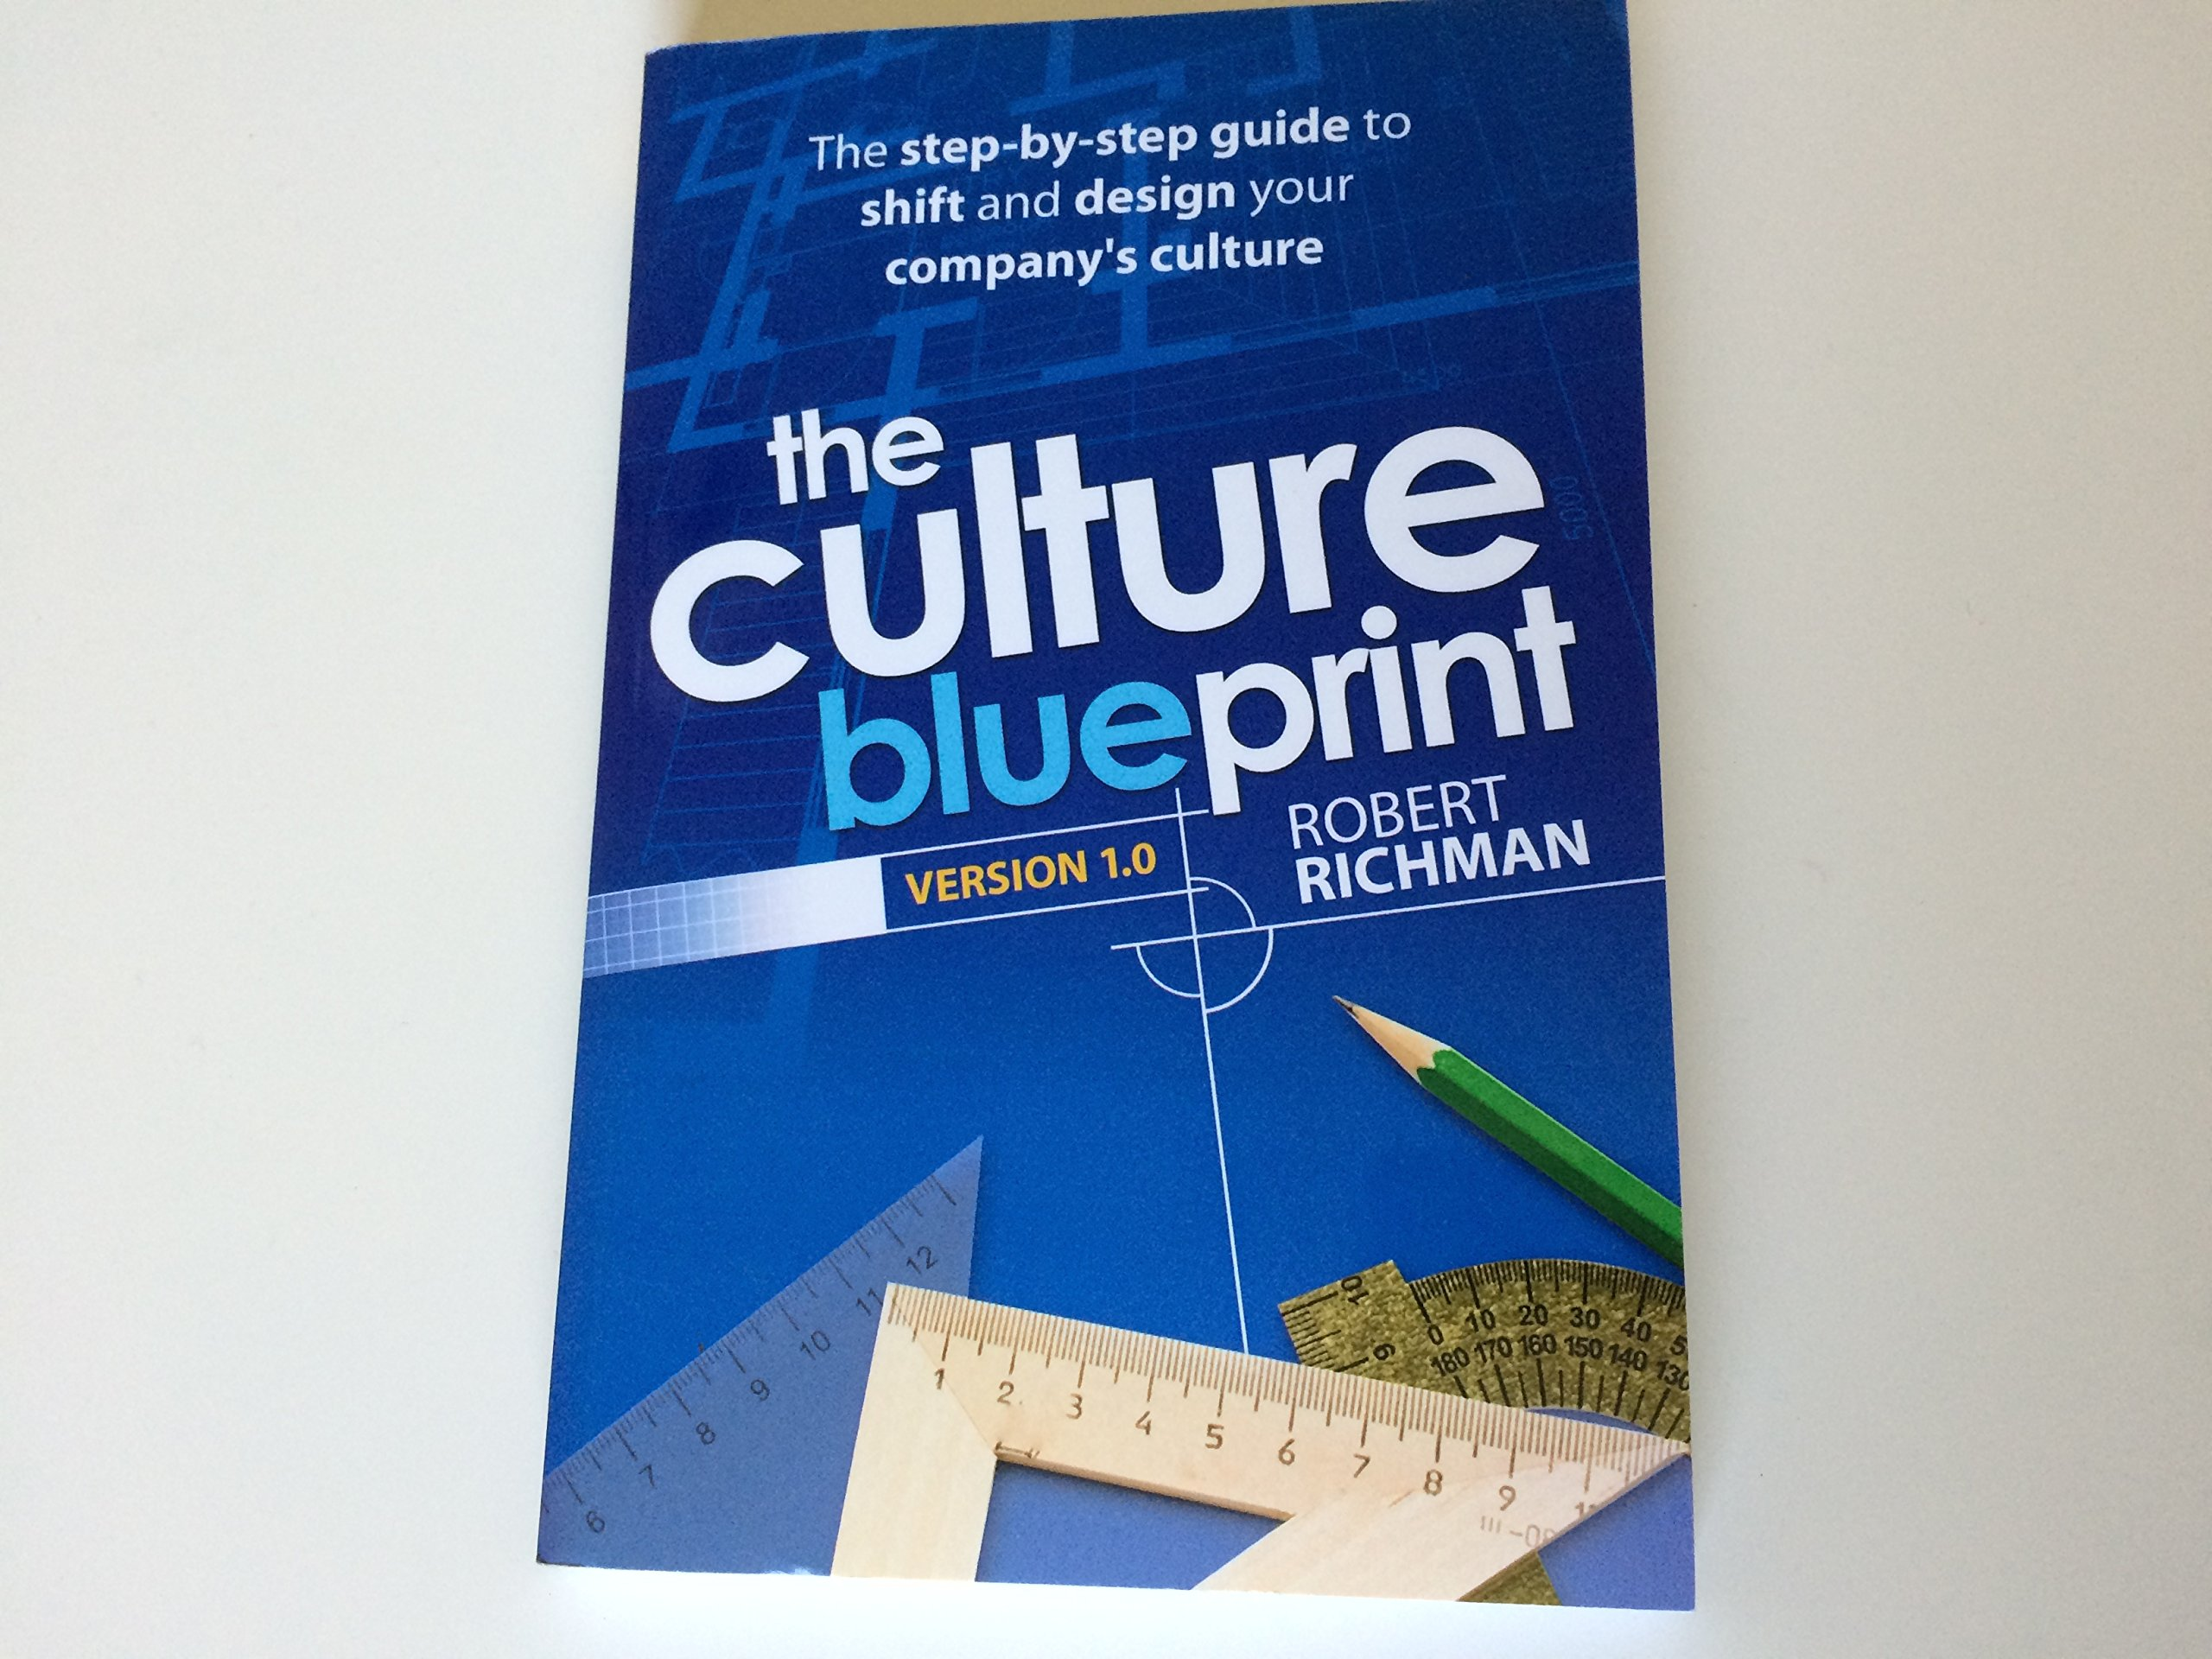 The culture blueprint version 10 the step by step guide to shift the culture blueprint version 10 the step by step guide to shift and design your companys culture by robert richman robert richman 6661559835402 malvernweather Gallery